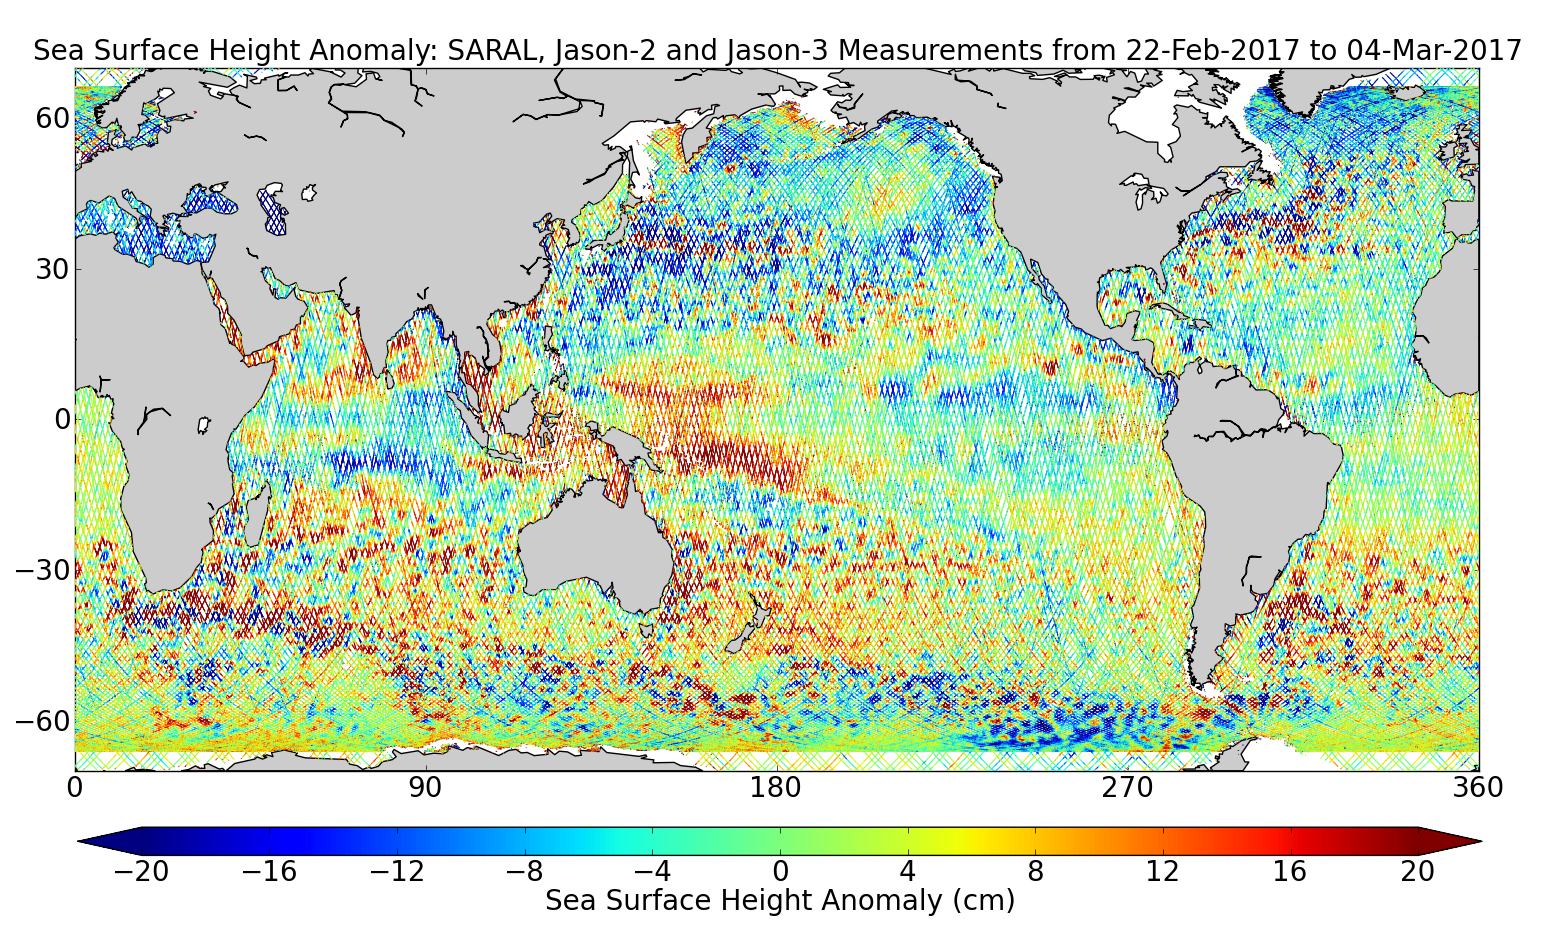 Sea Surface Height Anomaly: SARAL, Jason-2 and Jason-3 Measurements from 22-Feb-2017 to 04-Mar-2017